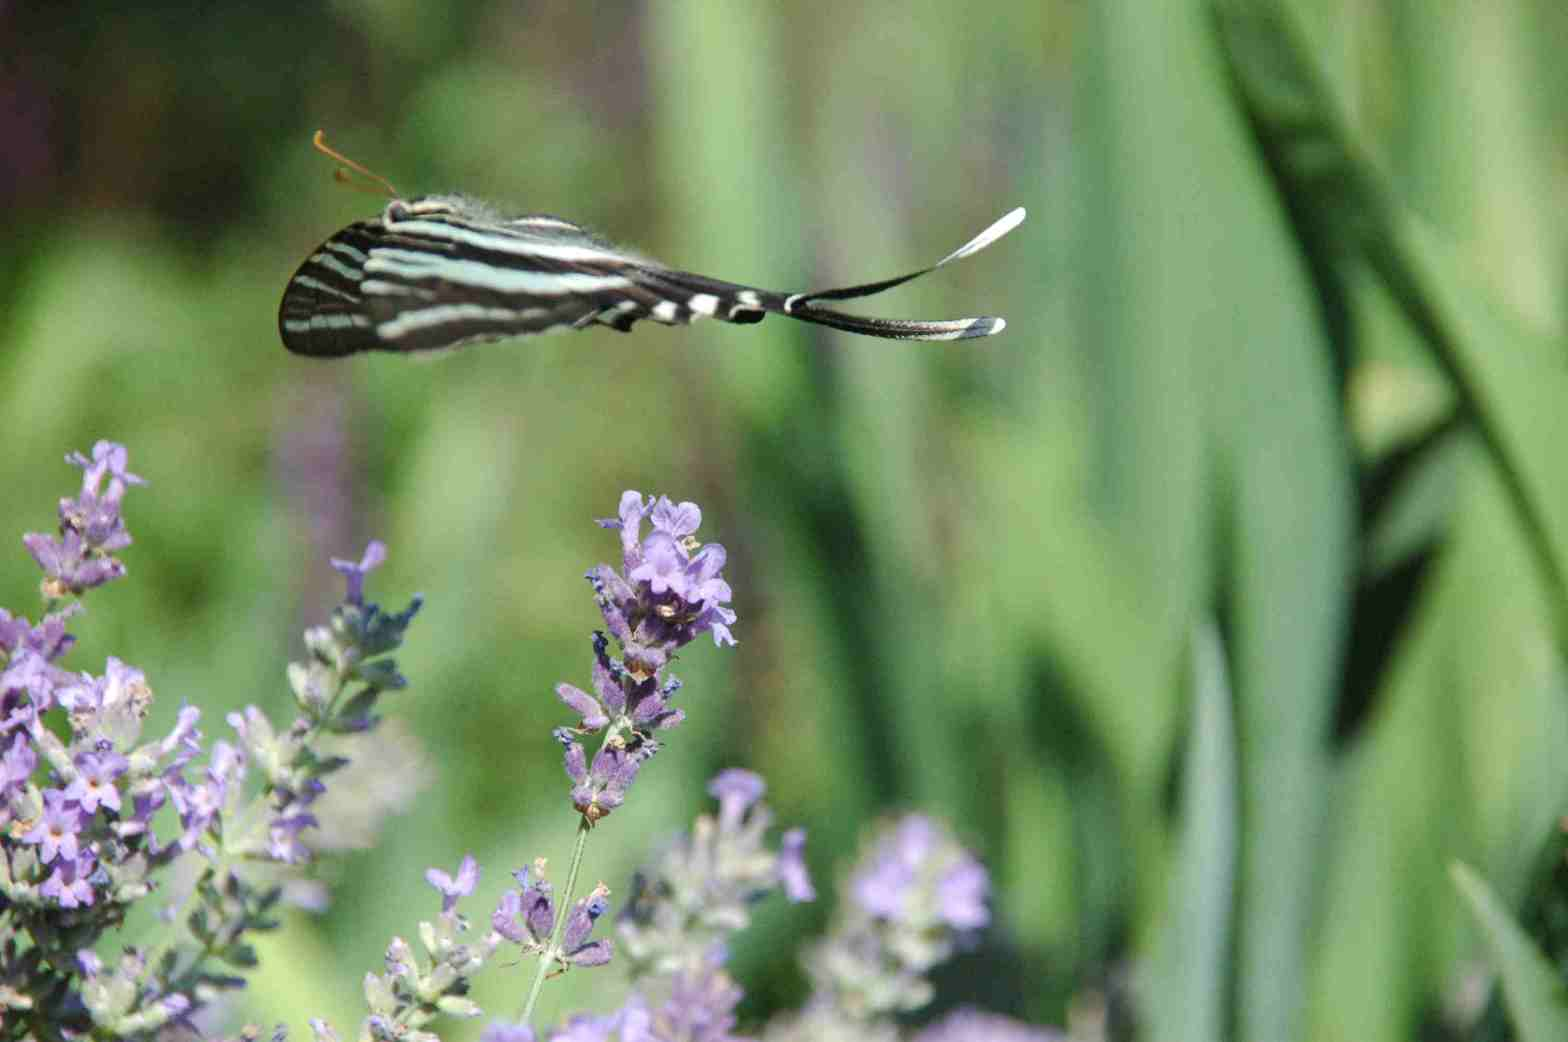 Zebra Swallowtail butterfly in flight